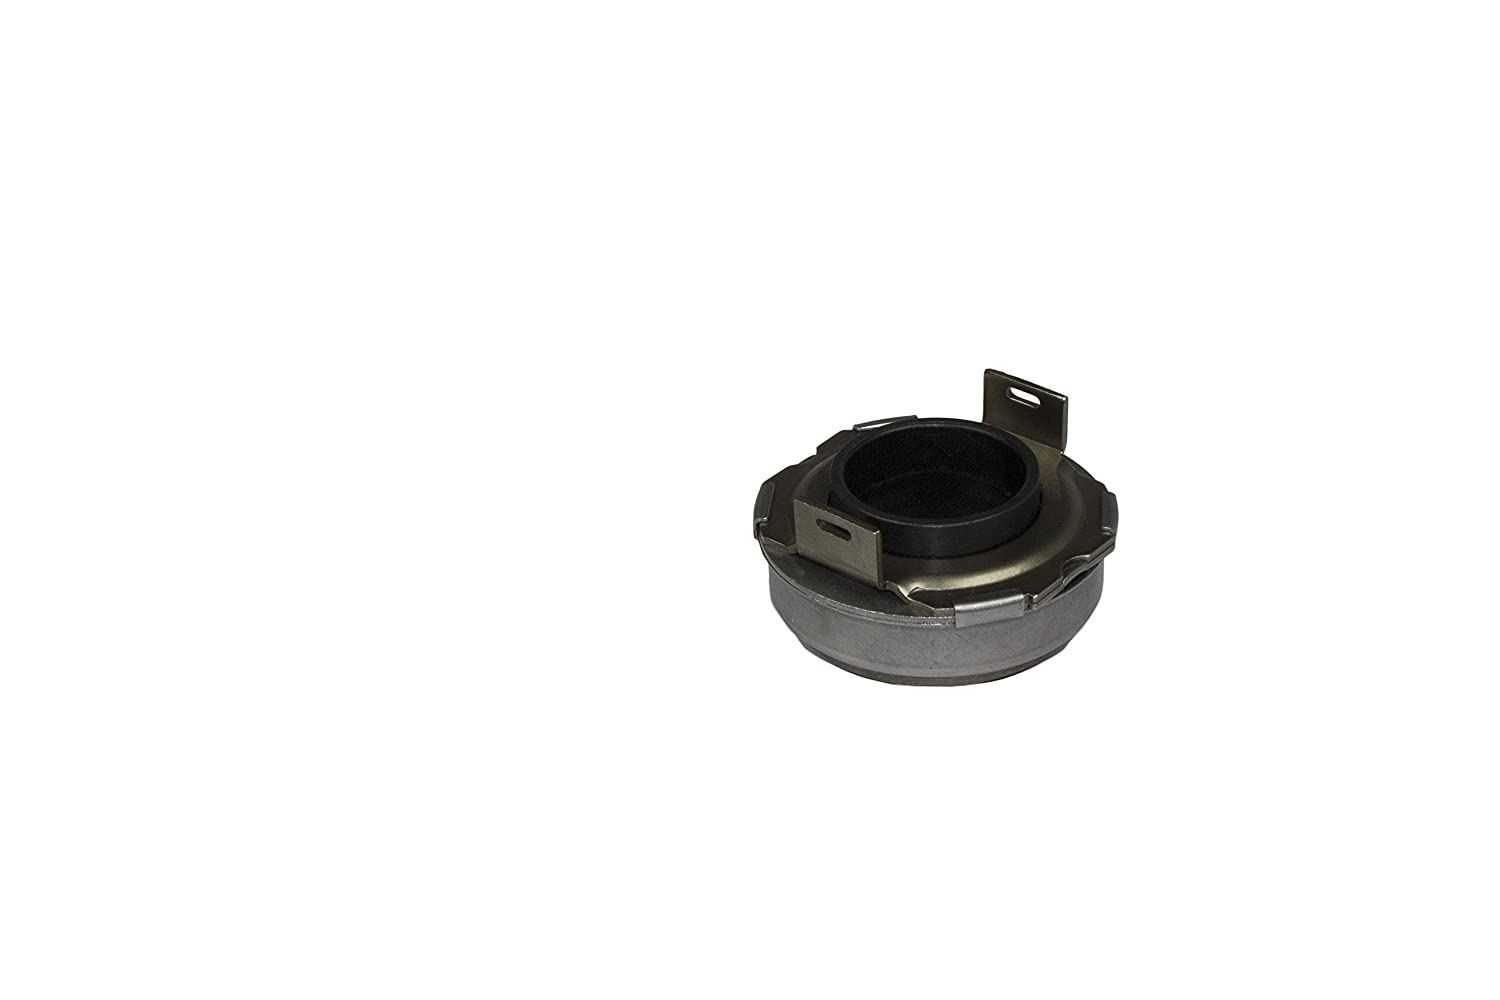 New Clutch Release Throwout Bearing For Acura Integra Rs Gs Ls Gs-R 1.8L